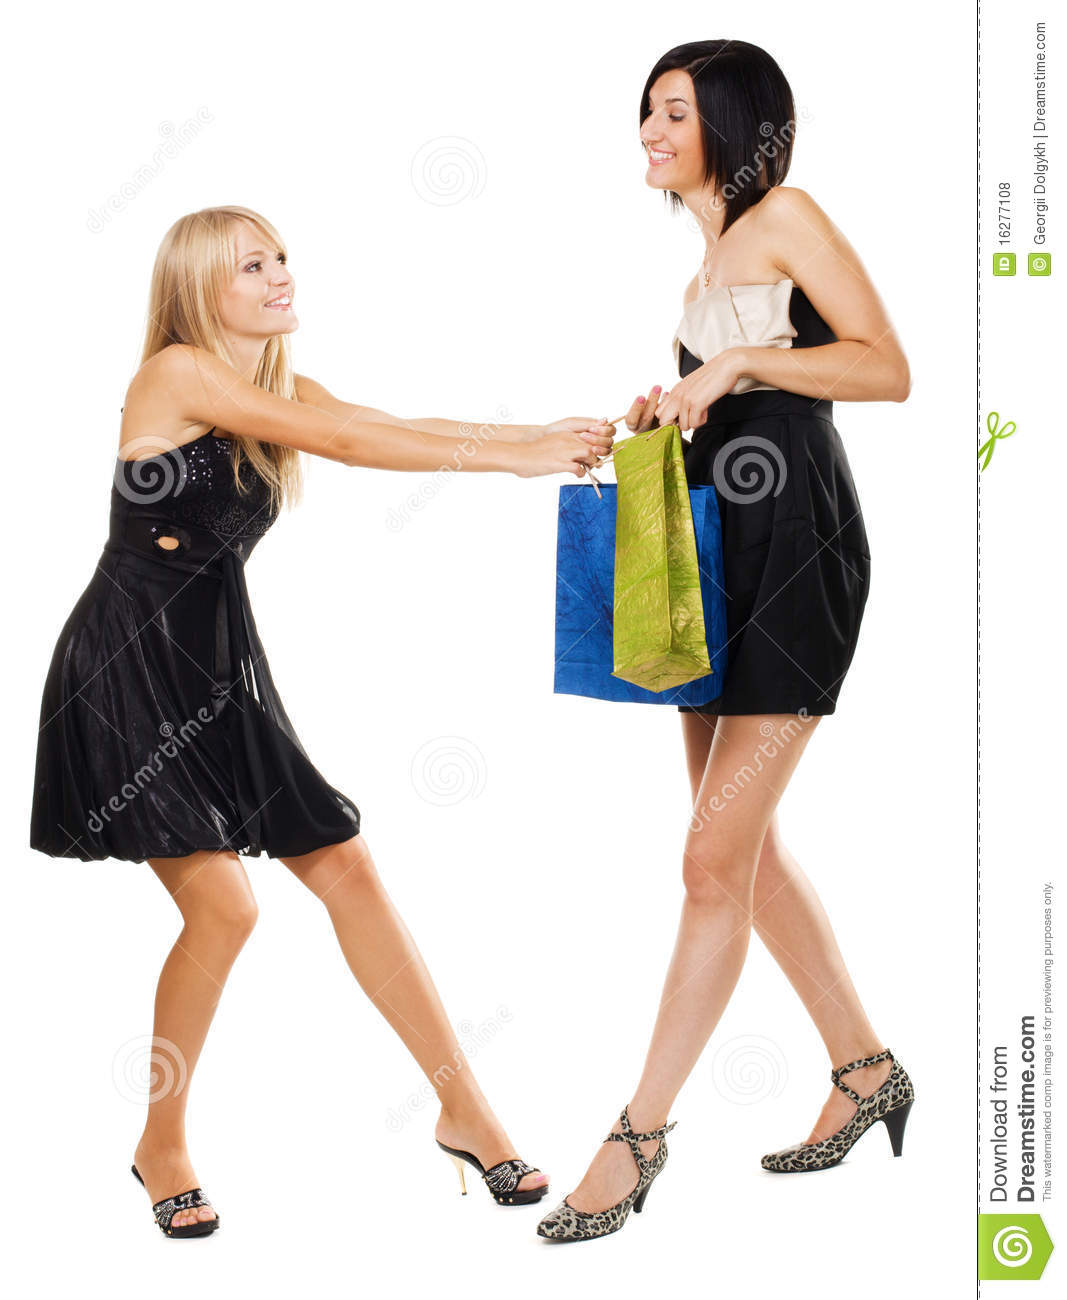 Ladies fighting without dress